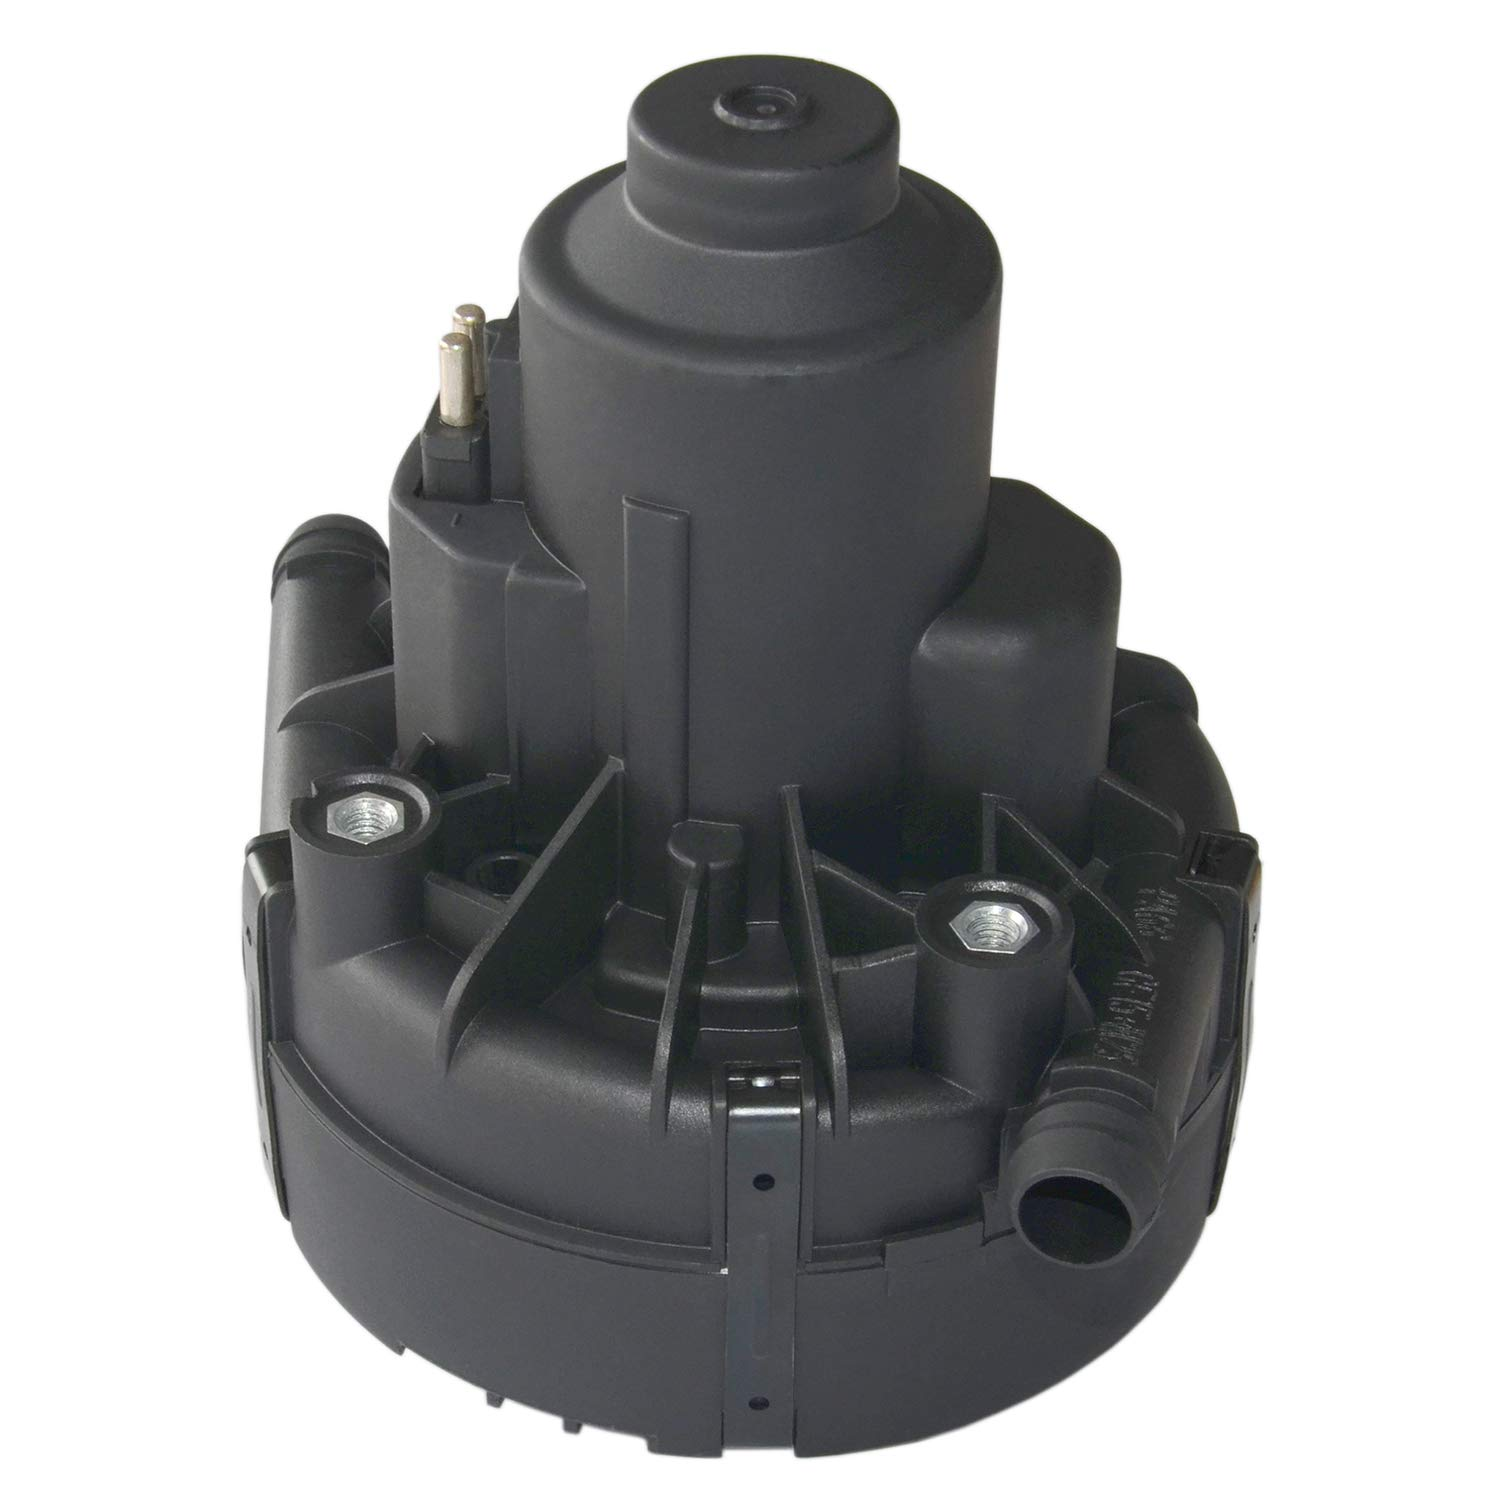 Secondary Air Injection Smog Air Pump For Mercedes Benz C230 C280 C300 C350 GLK350 SLK350 E350 GL450 GL550 R350 ML350 SL550 Model Years 2005-2015 Part# A0580000025 A0001405185 by Surwit